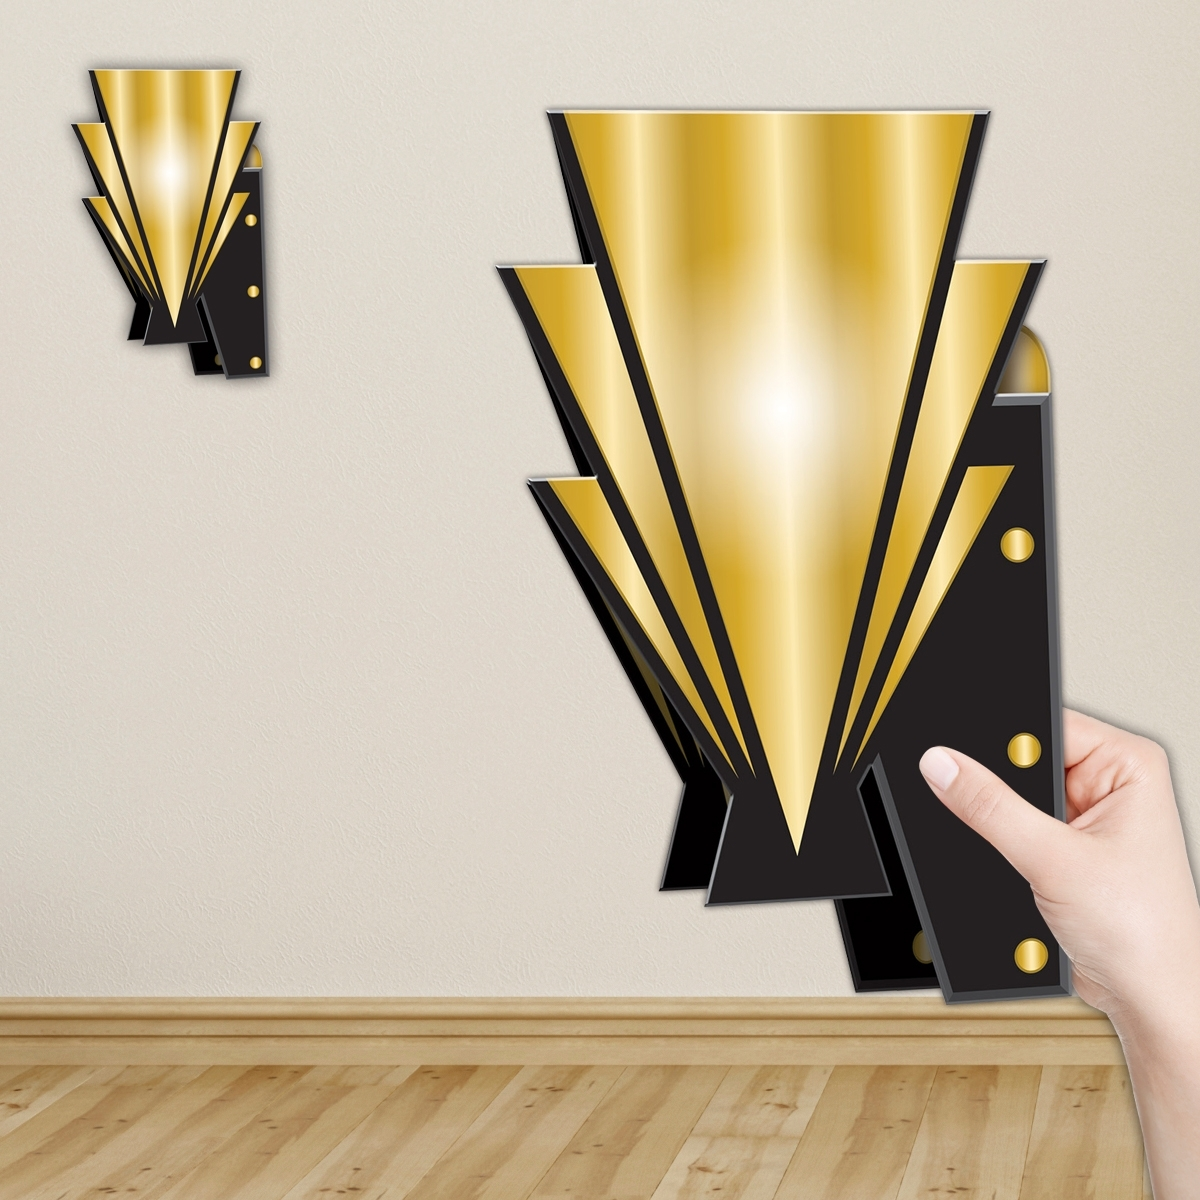 Art Deco Wall Sconces Ideas : Andrews Living Arts - Good Style Art inside Art Deco Wall Sconces (Image 8 of 20)